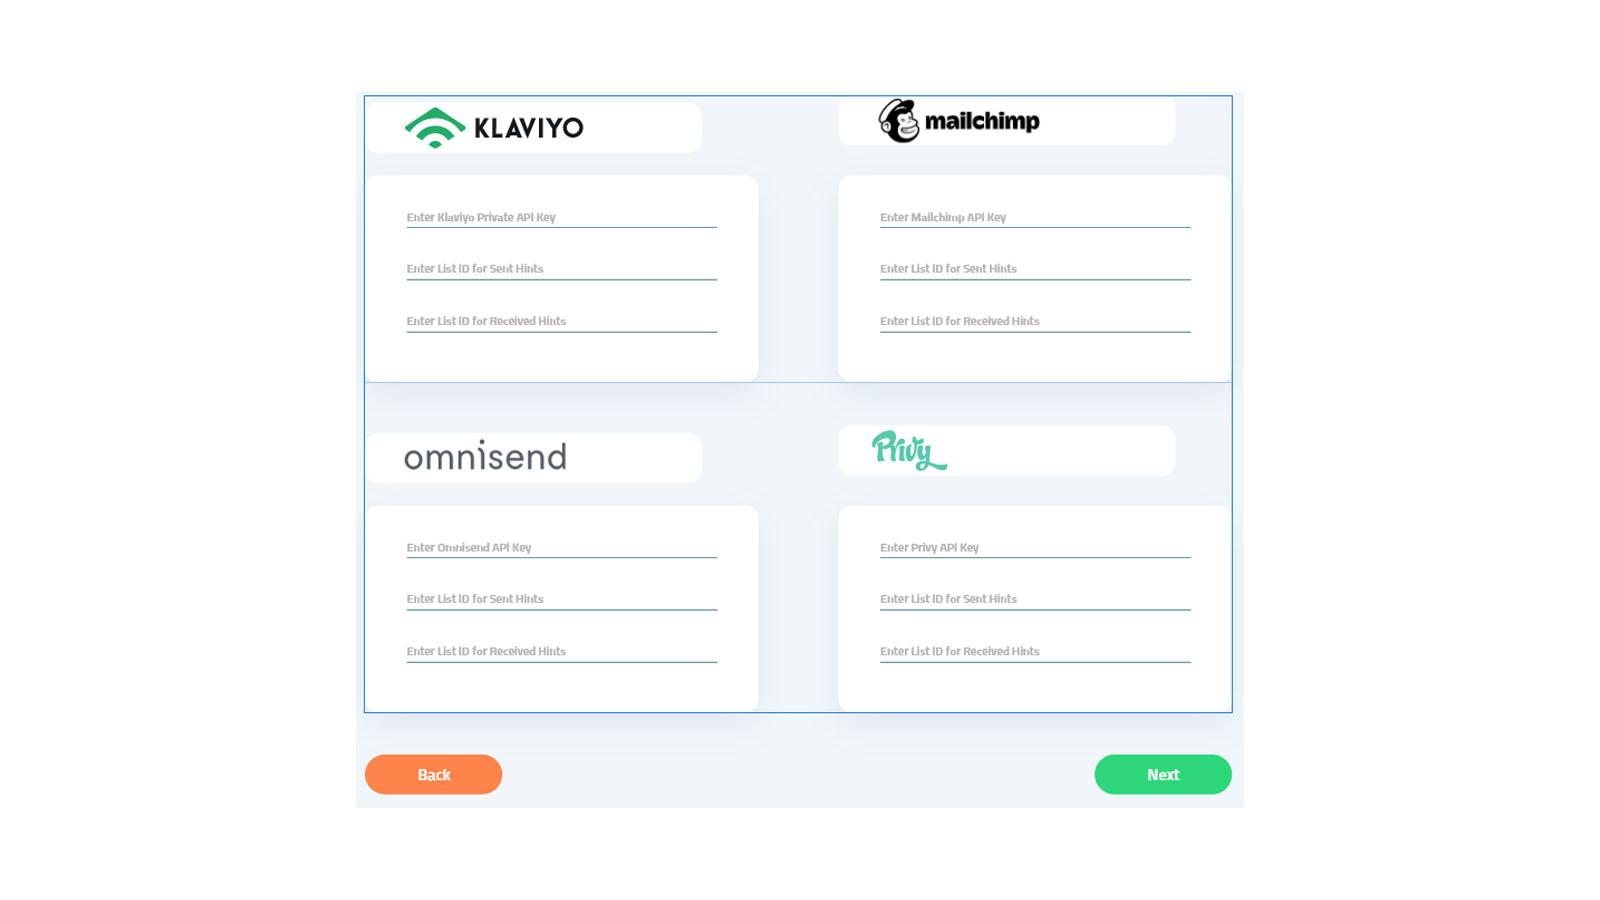 Integrates with multiple marketing platforms